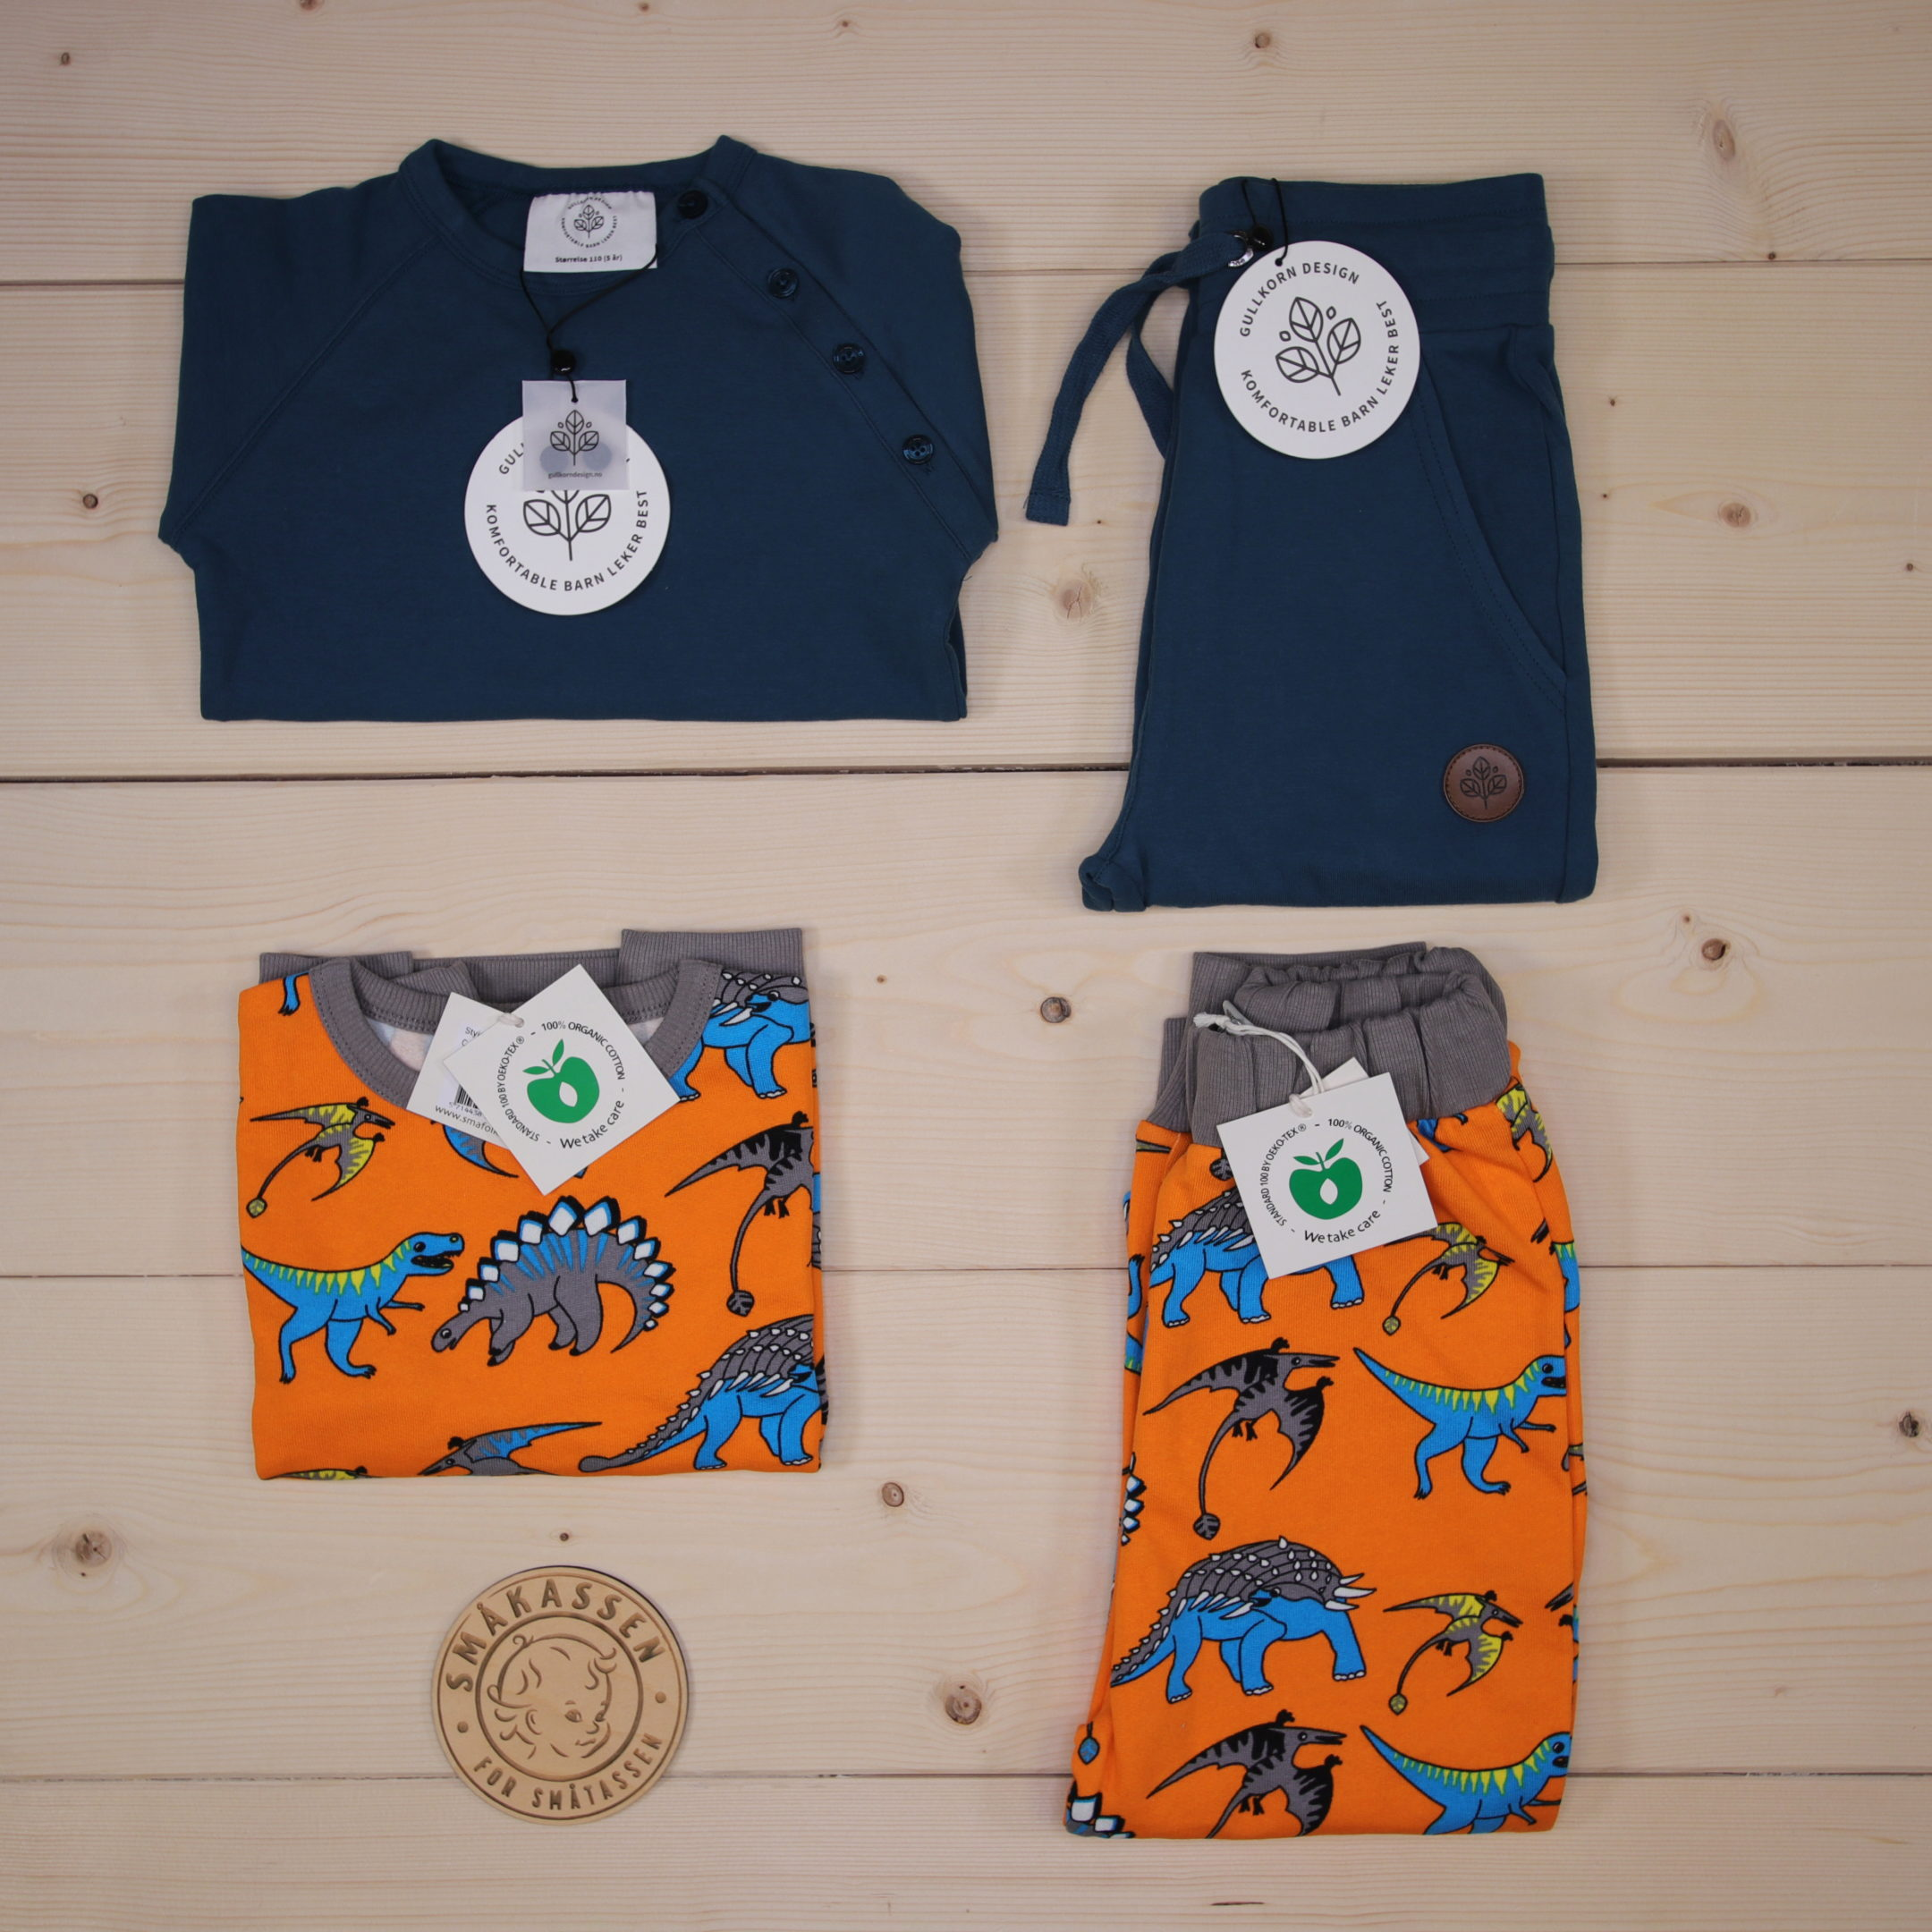 News: Småfolk outfit with dinosaurs combined with Gullkorn from AW19   This is Småkassen that we prepared for a boy in the styles cute, cool, and colorful in size 110.